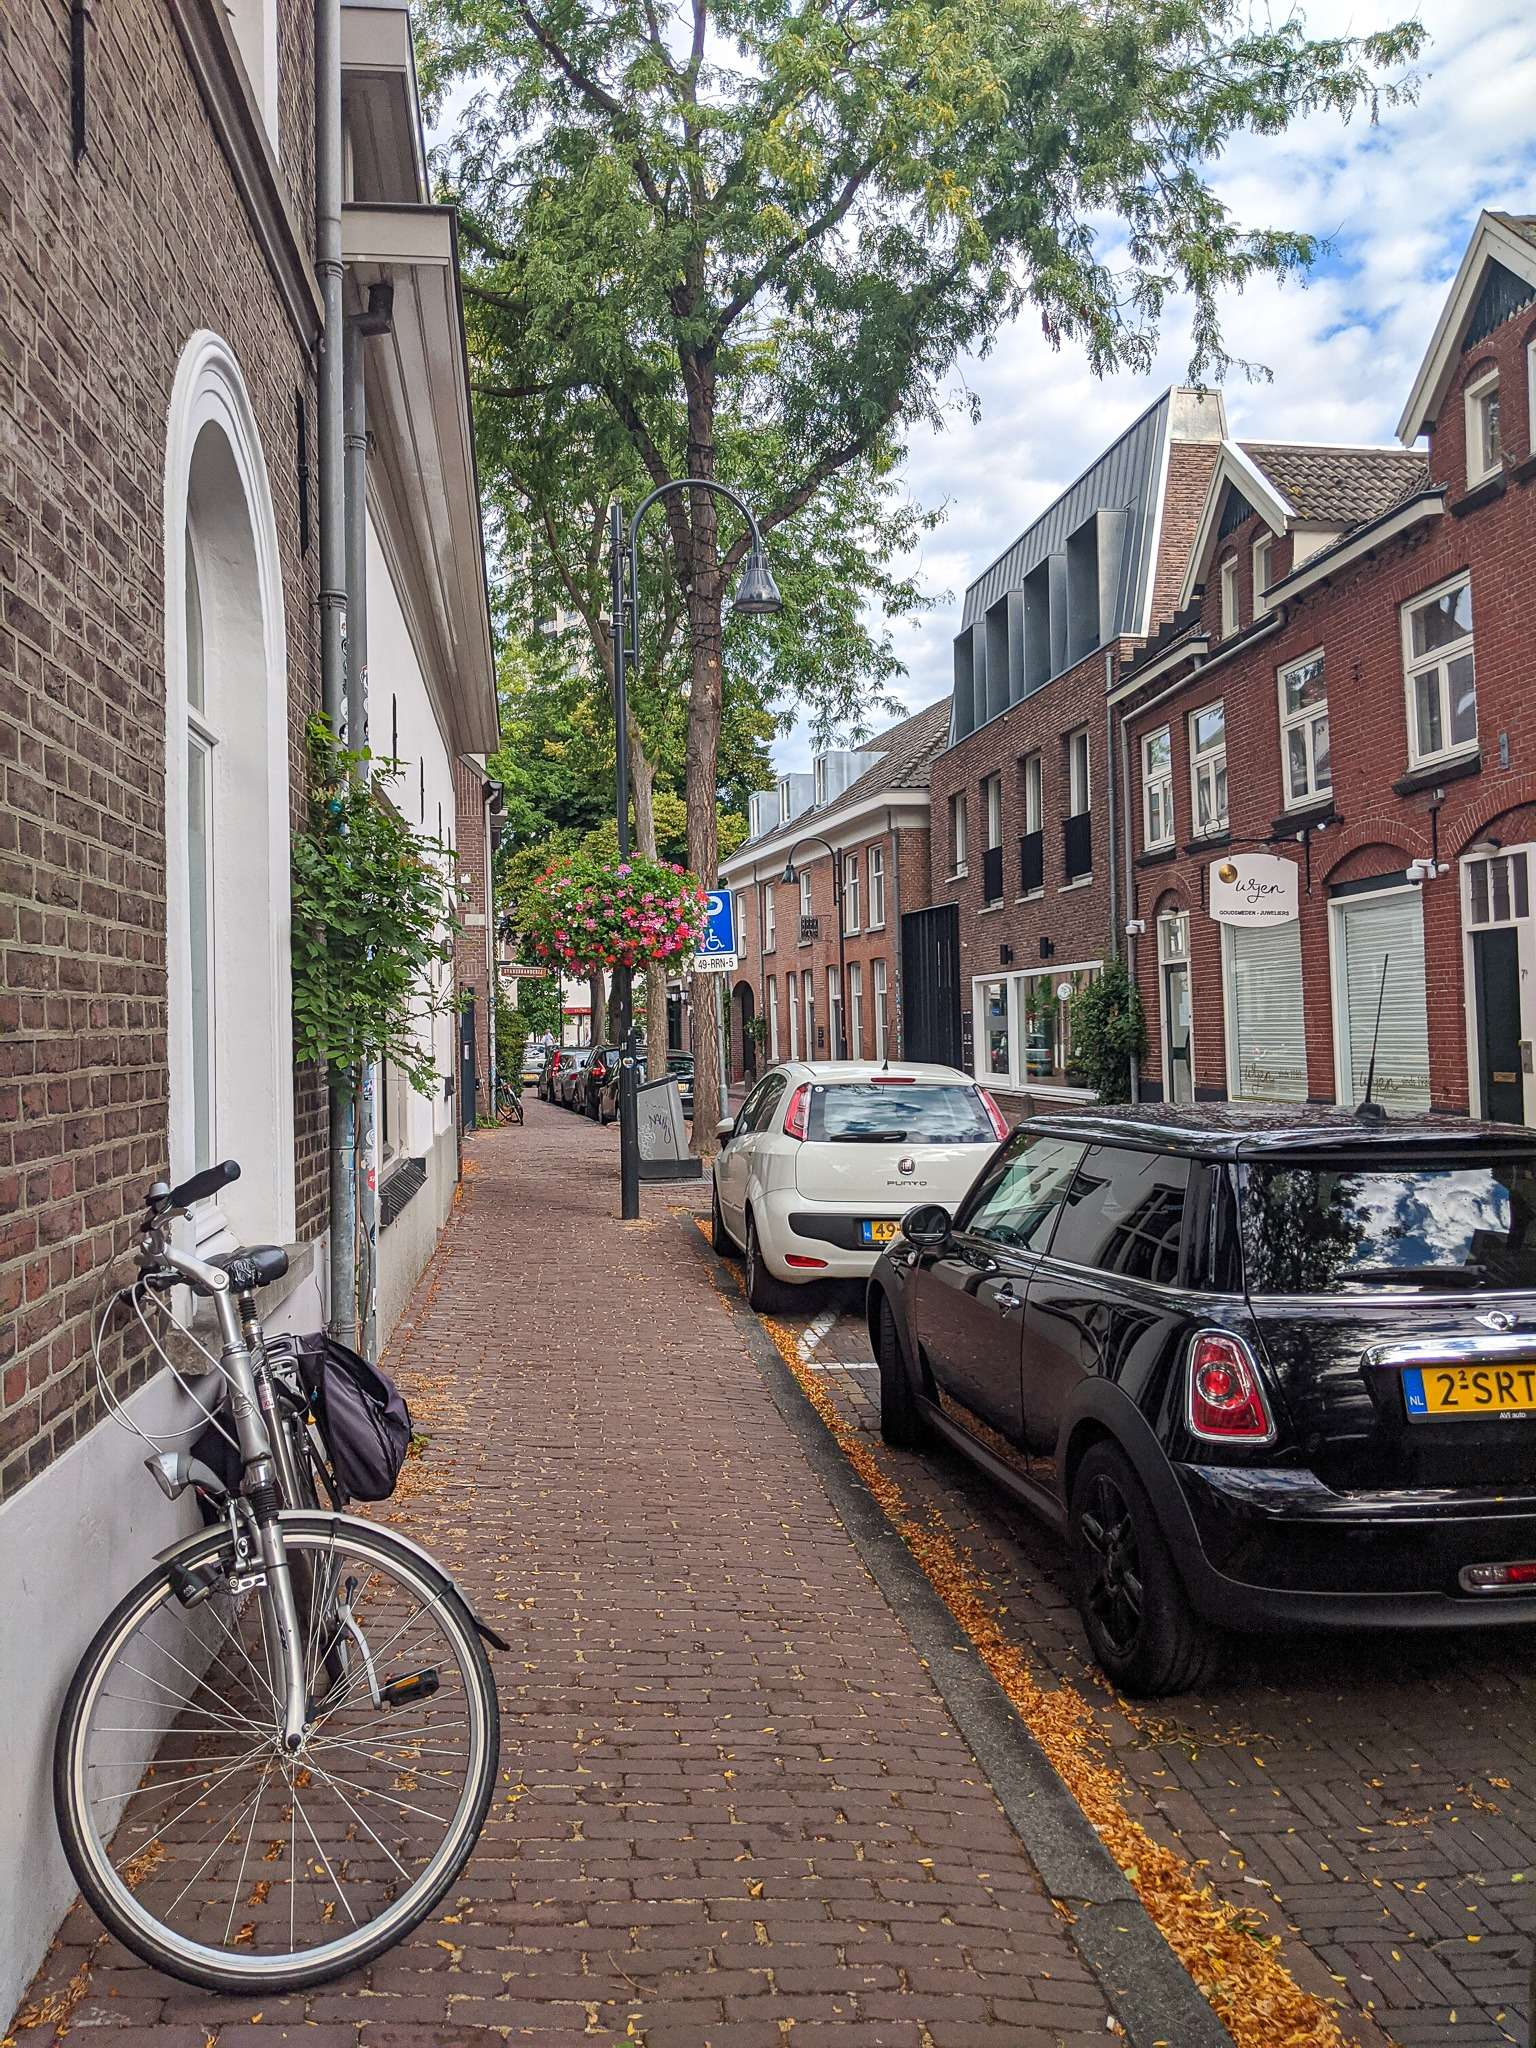 bicycle leaning against a red brick wall, with a black mini cooper parked beside it on a street in Eindhoven